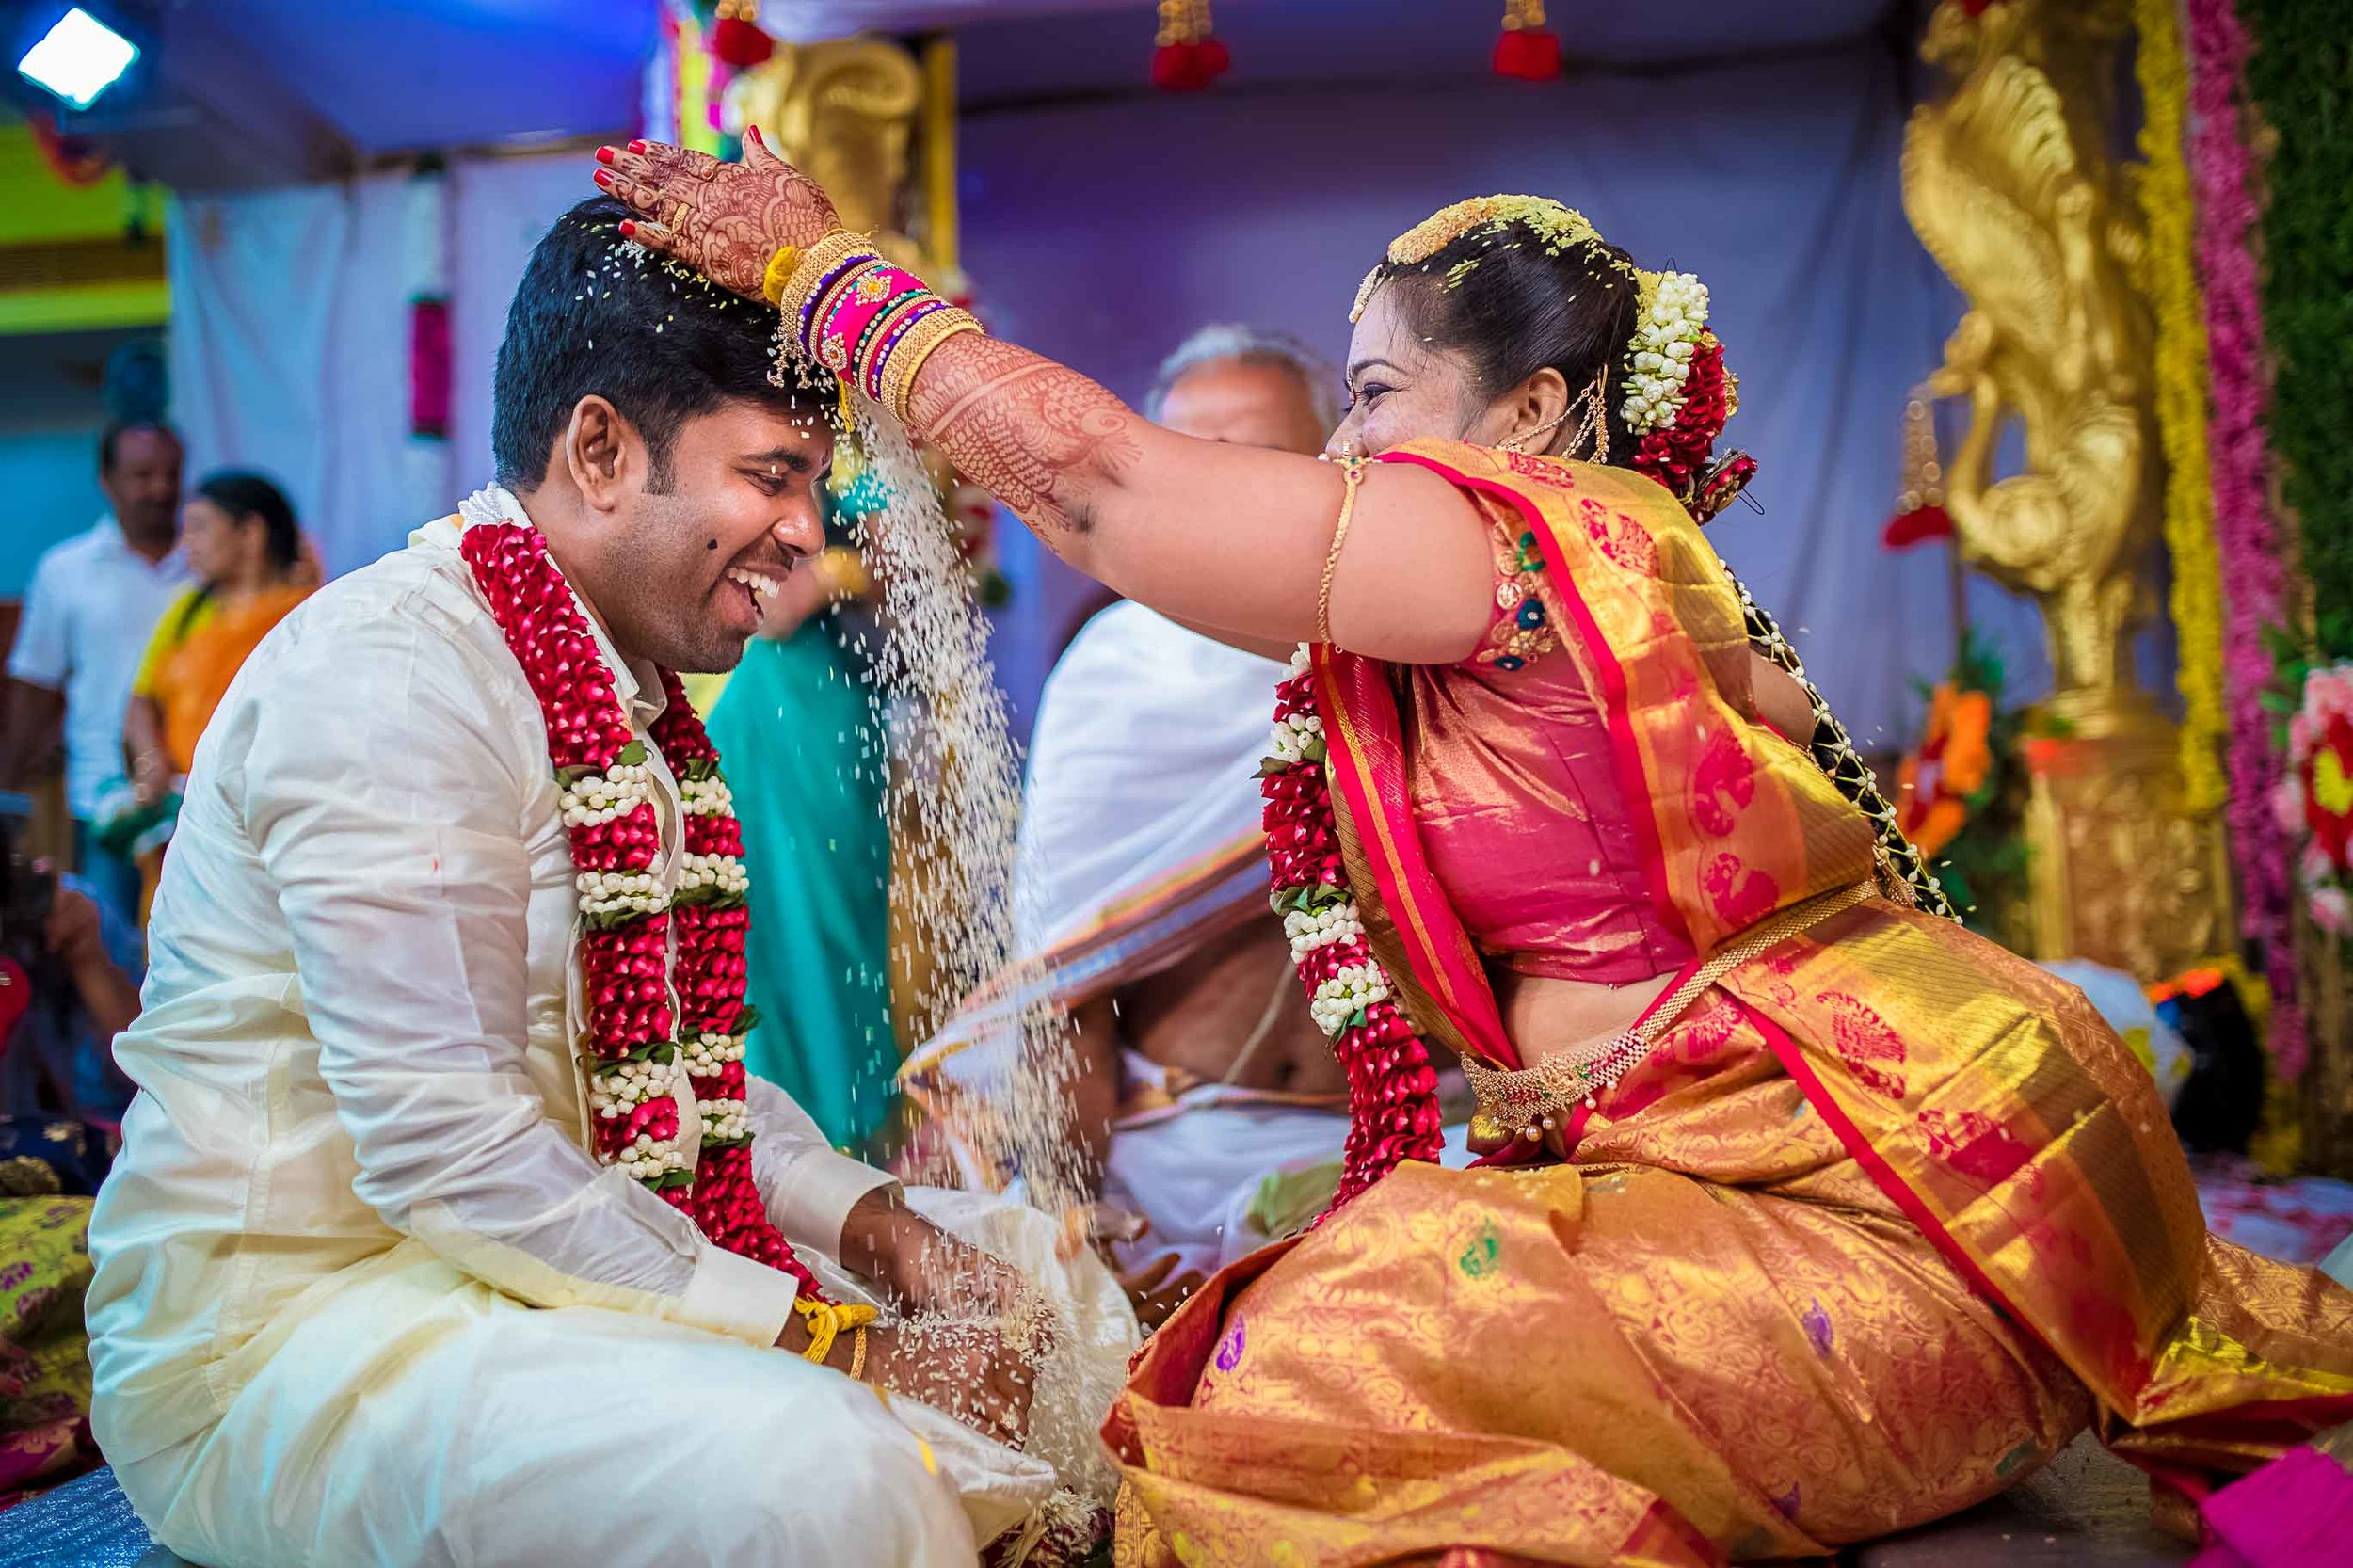 Pixel-Chronicles-Alekhya-Chaitanya-Nellore-Candid-Wedding-Ritual-14.jpg